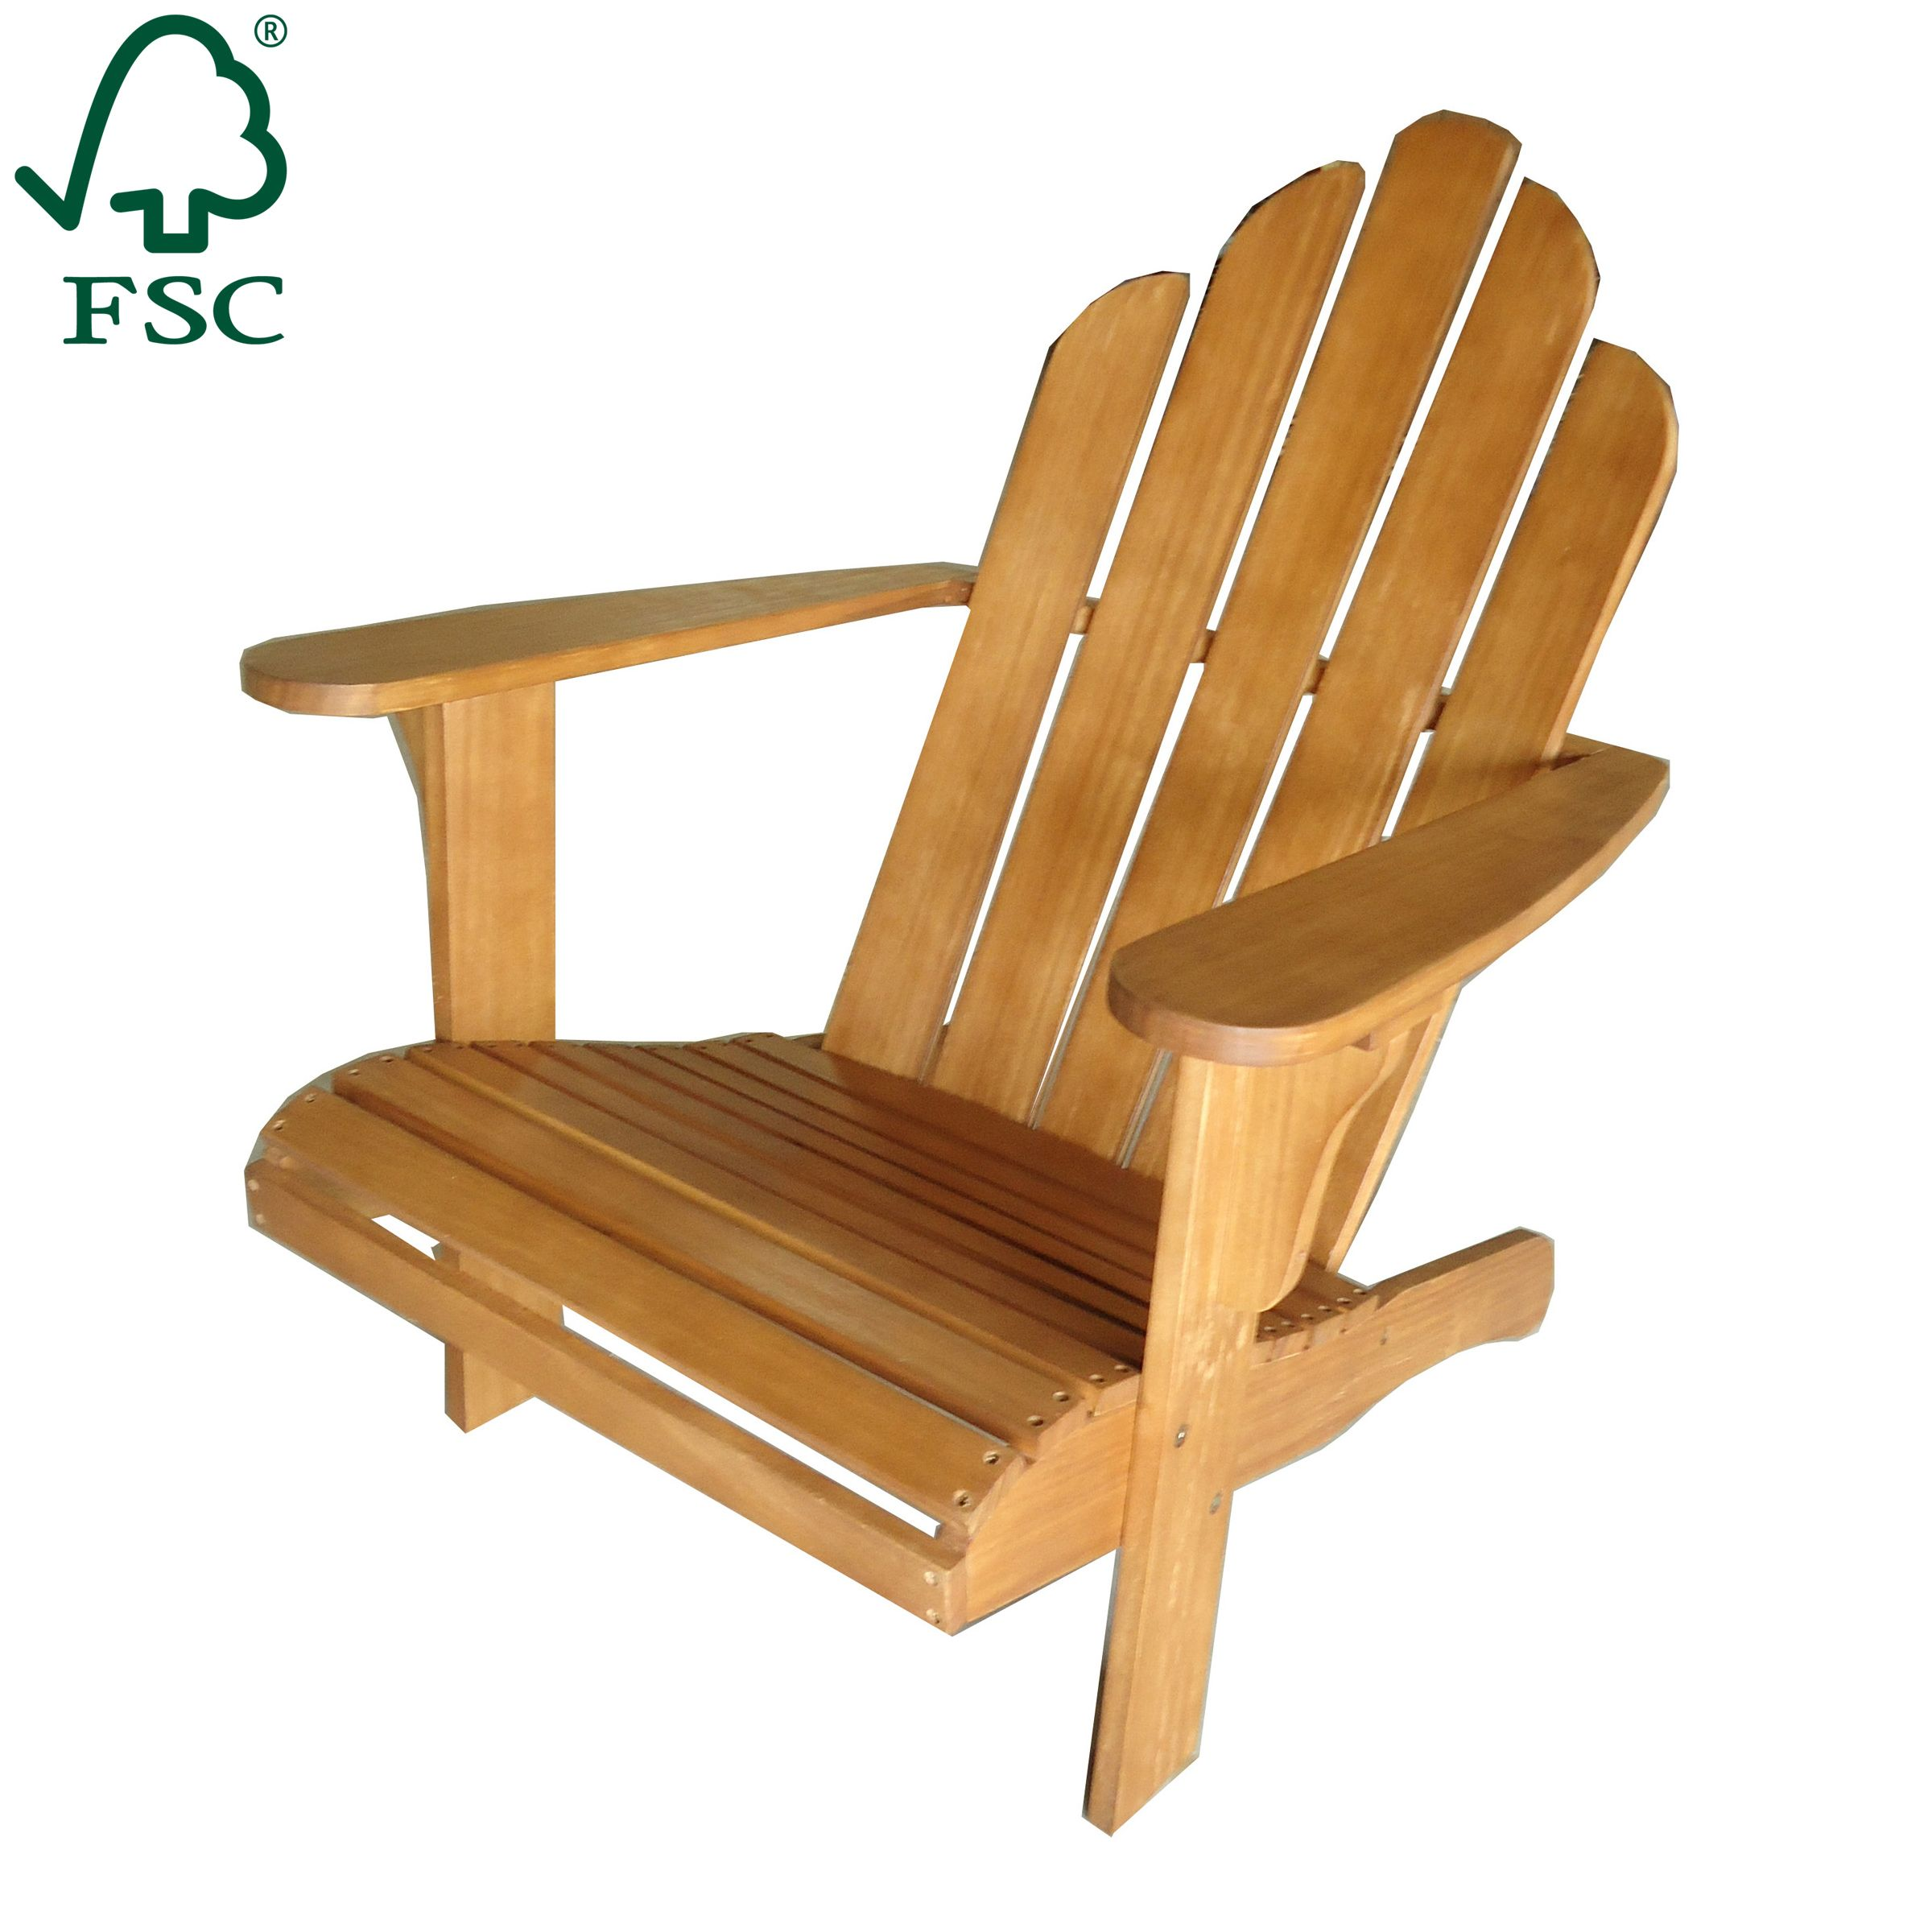 Gentil Mimosa Cape Cod Adirondack Timber Chair   Bunnings Warehouse